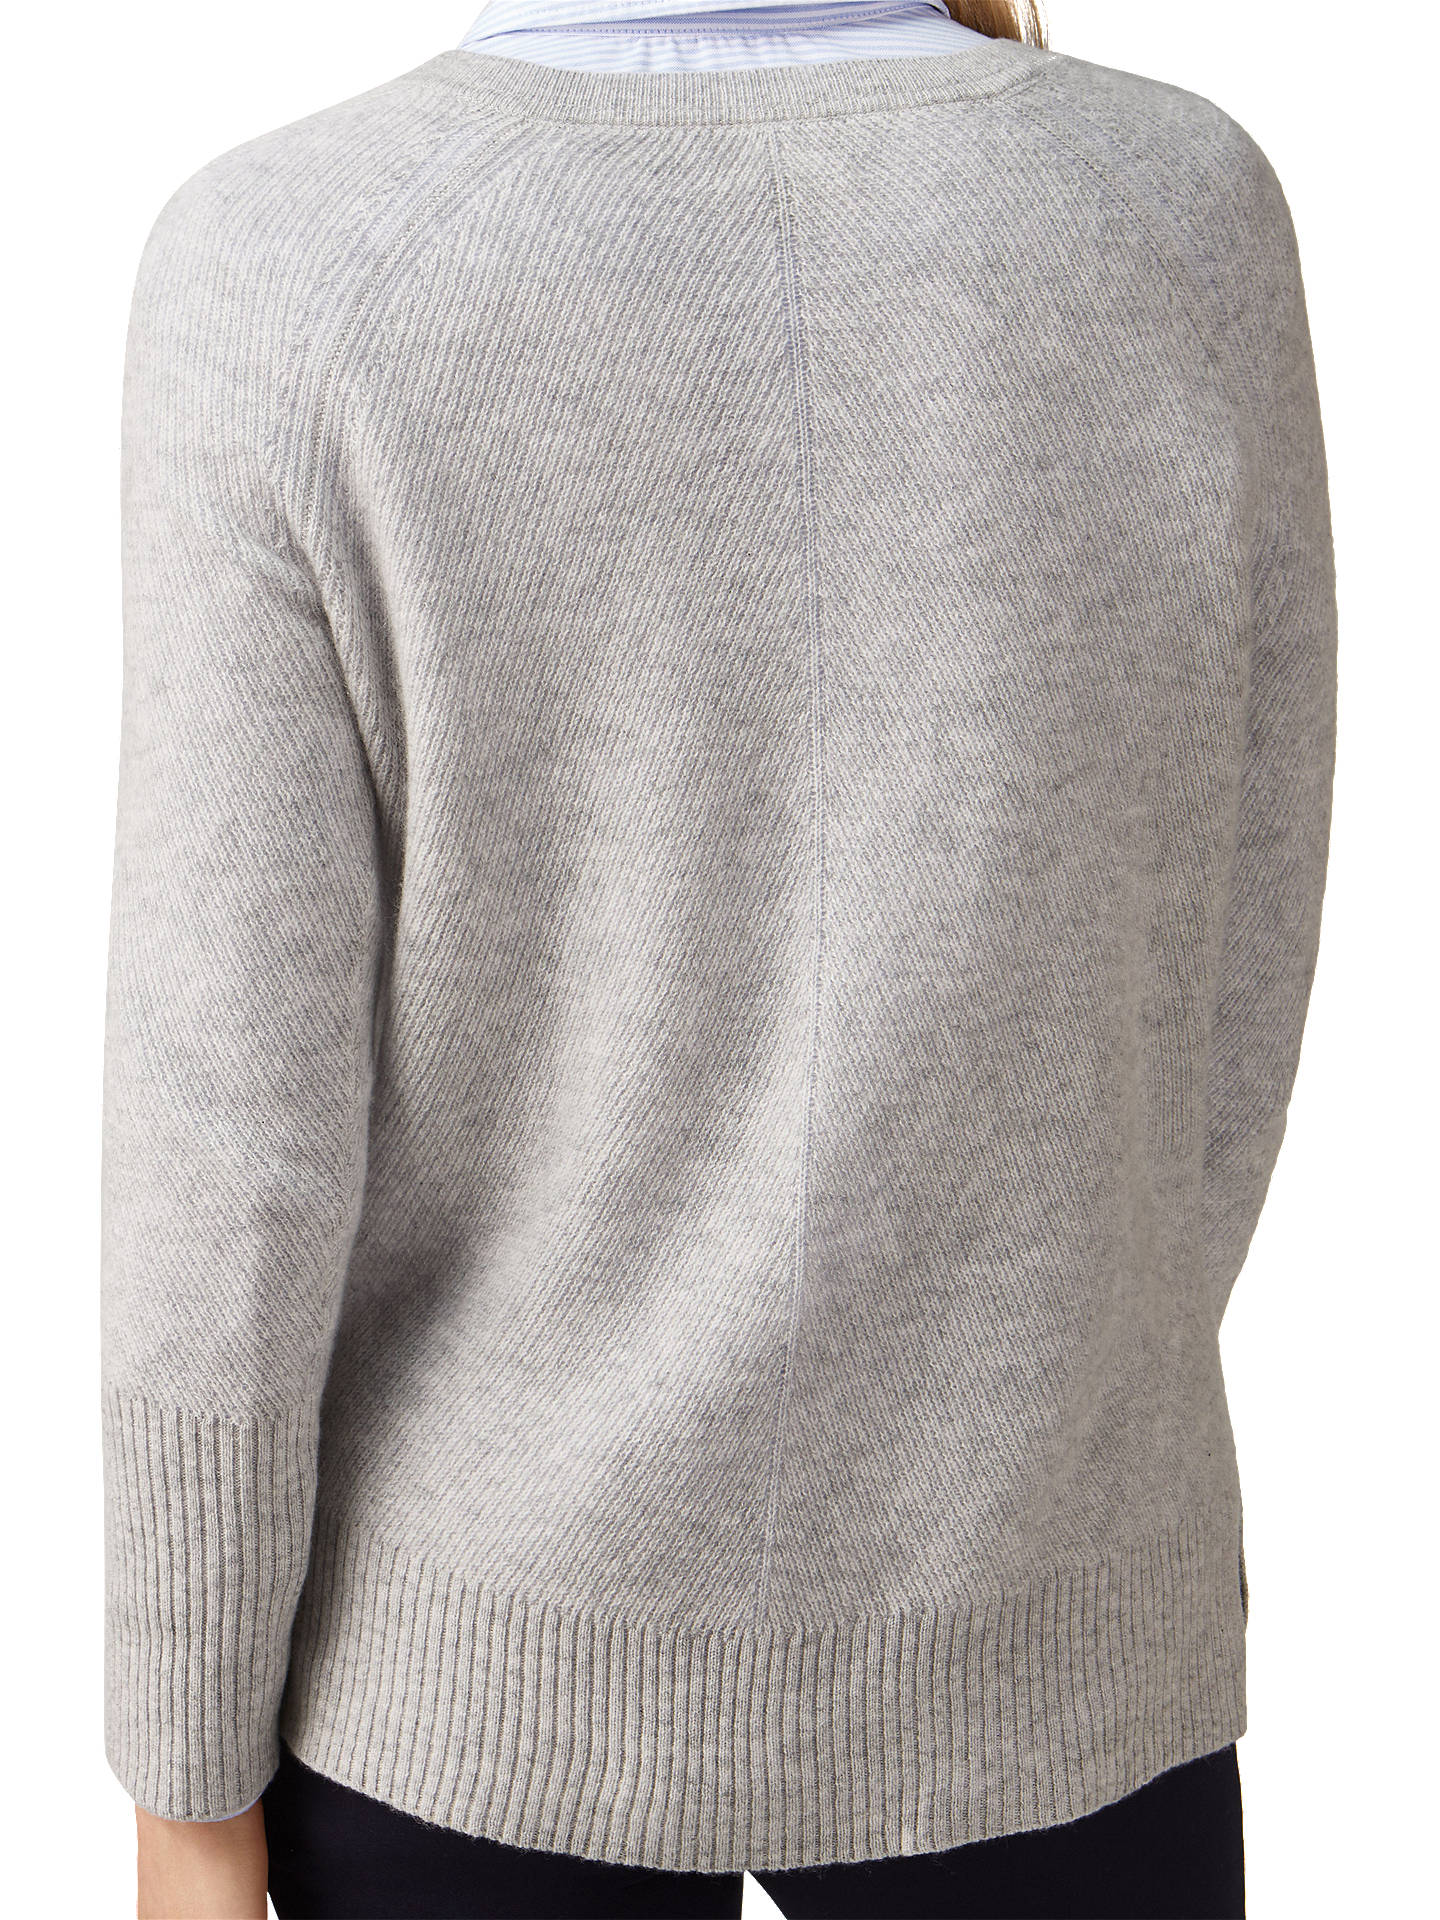 Buy Pure Collection Gassato Cashmere Lofty Textured V-Neck Jumper, Heather Dove, 8 Online at johnlewis.com